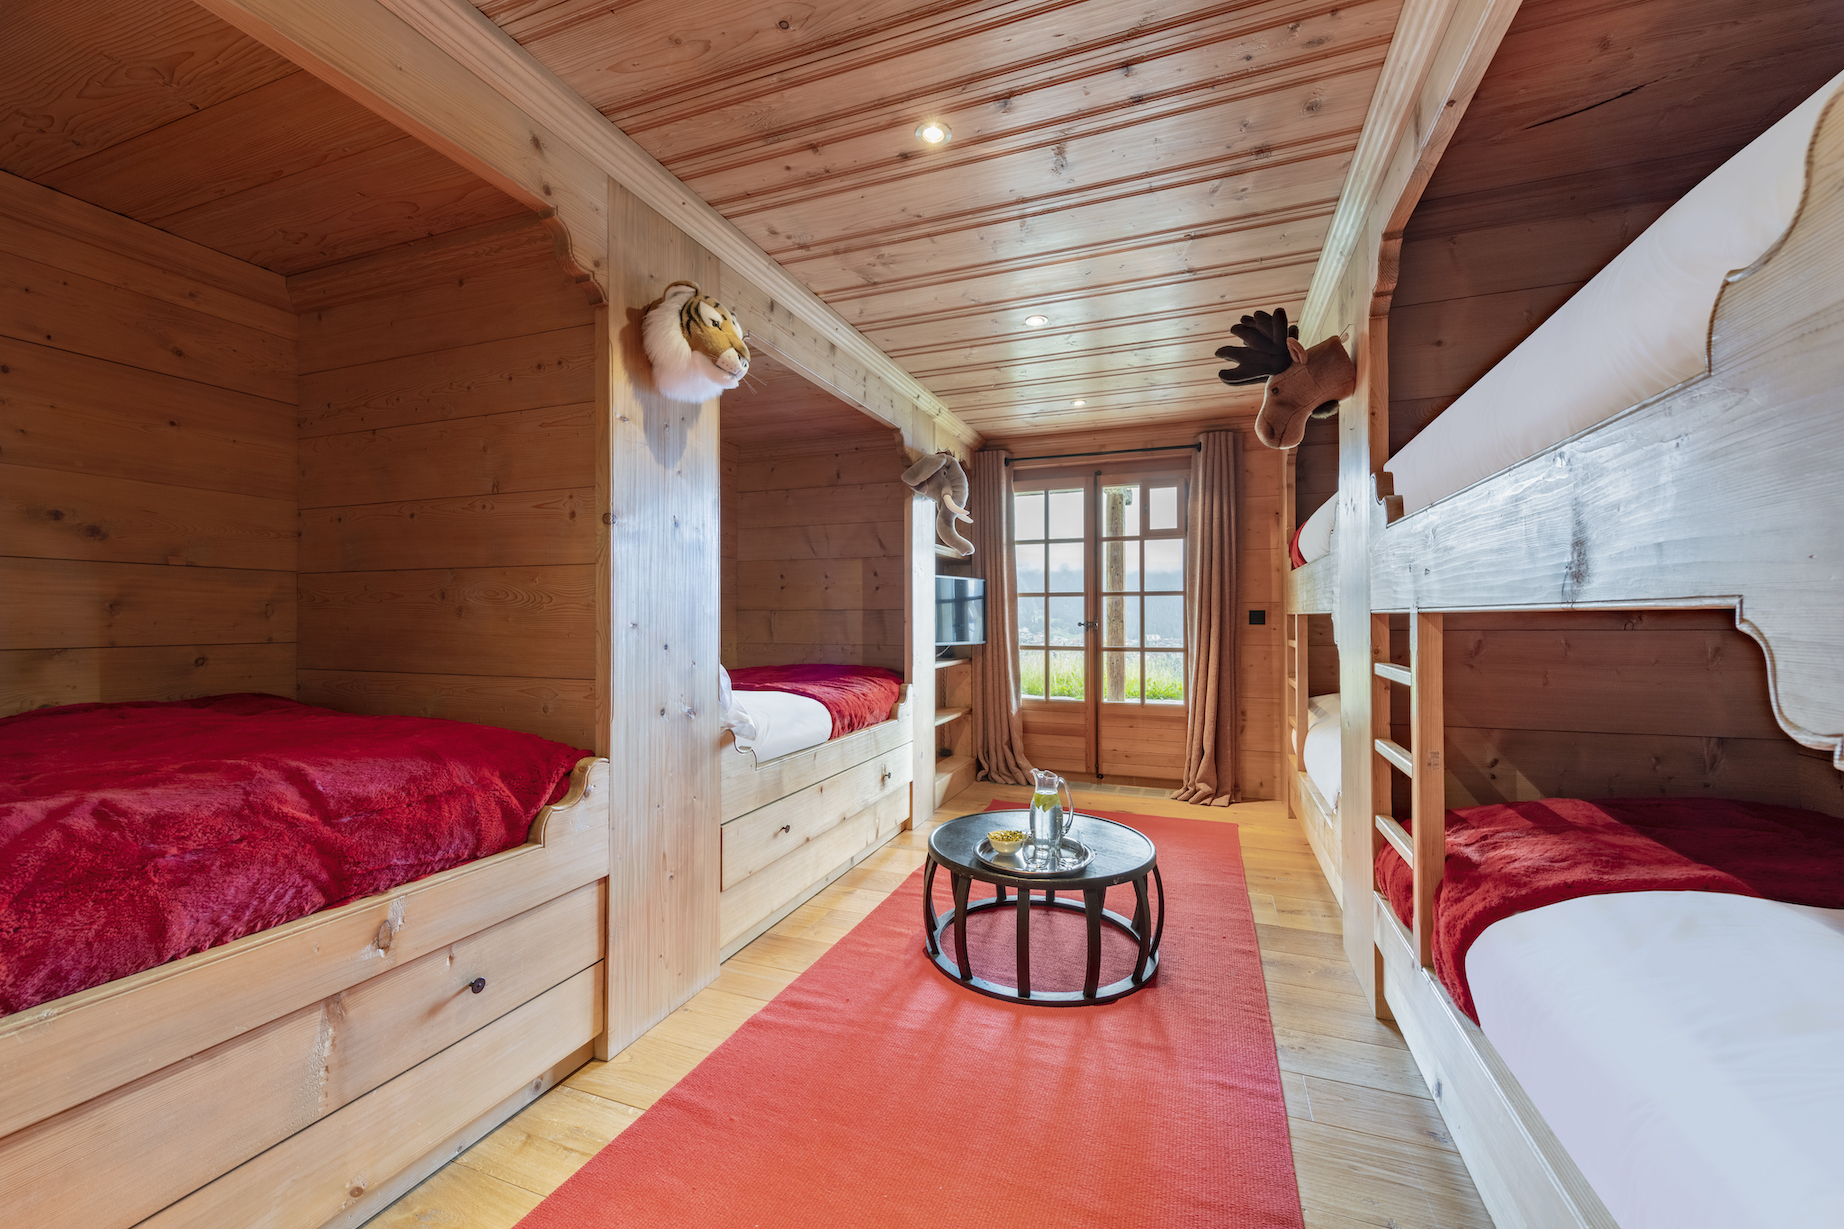 Chalet Le Tigre kids bedroom with double bunk beds